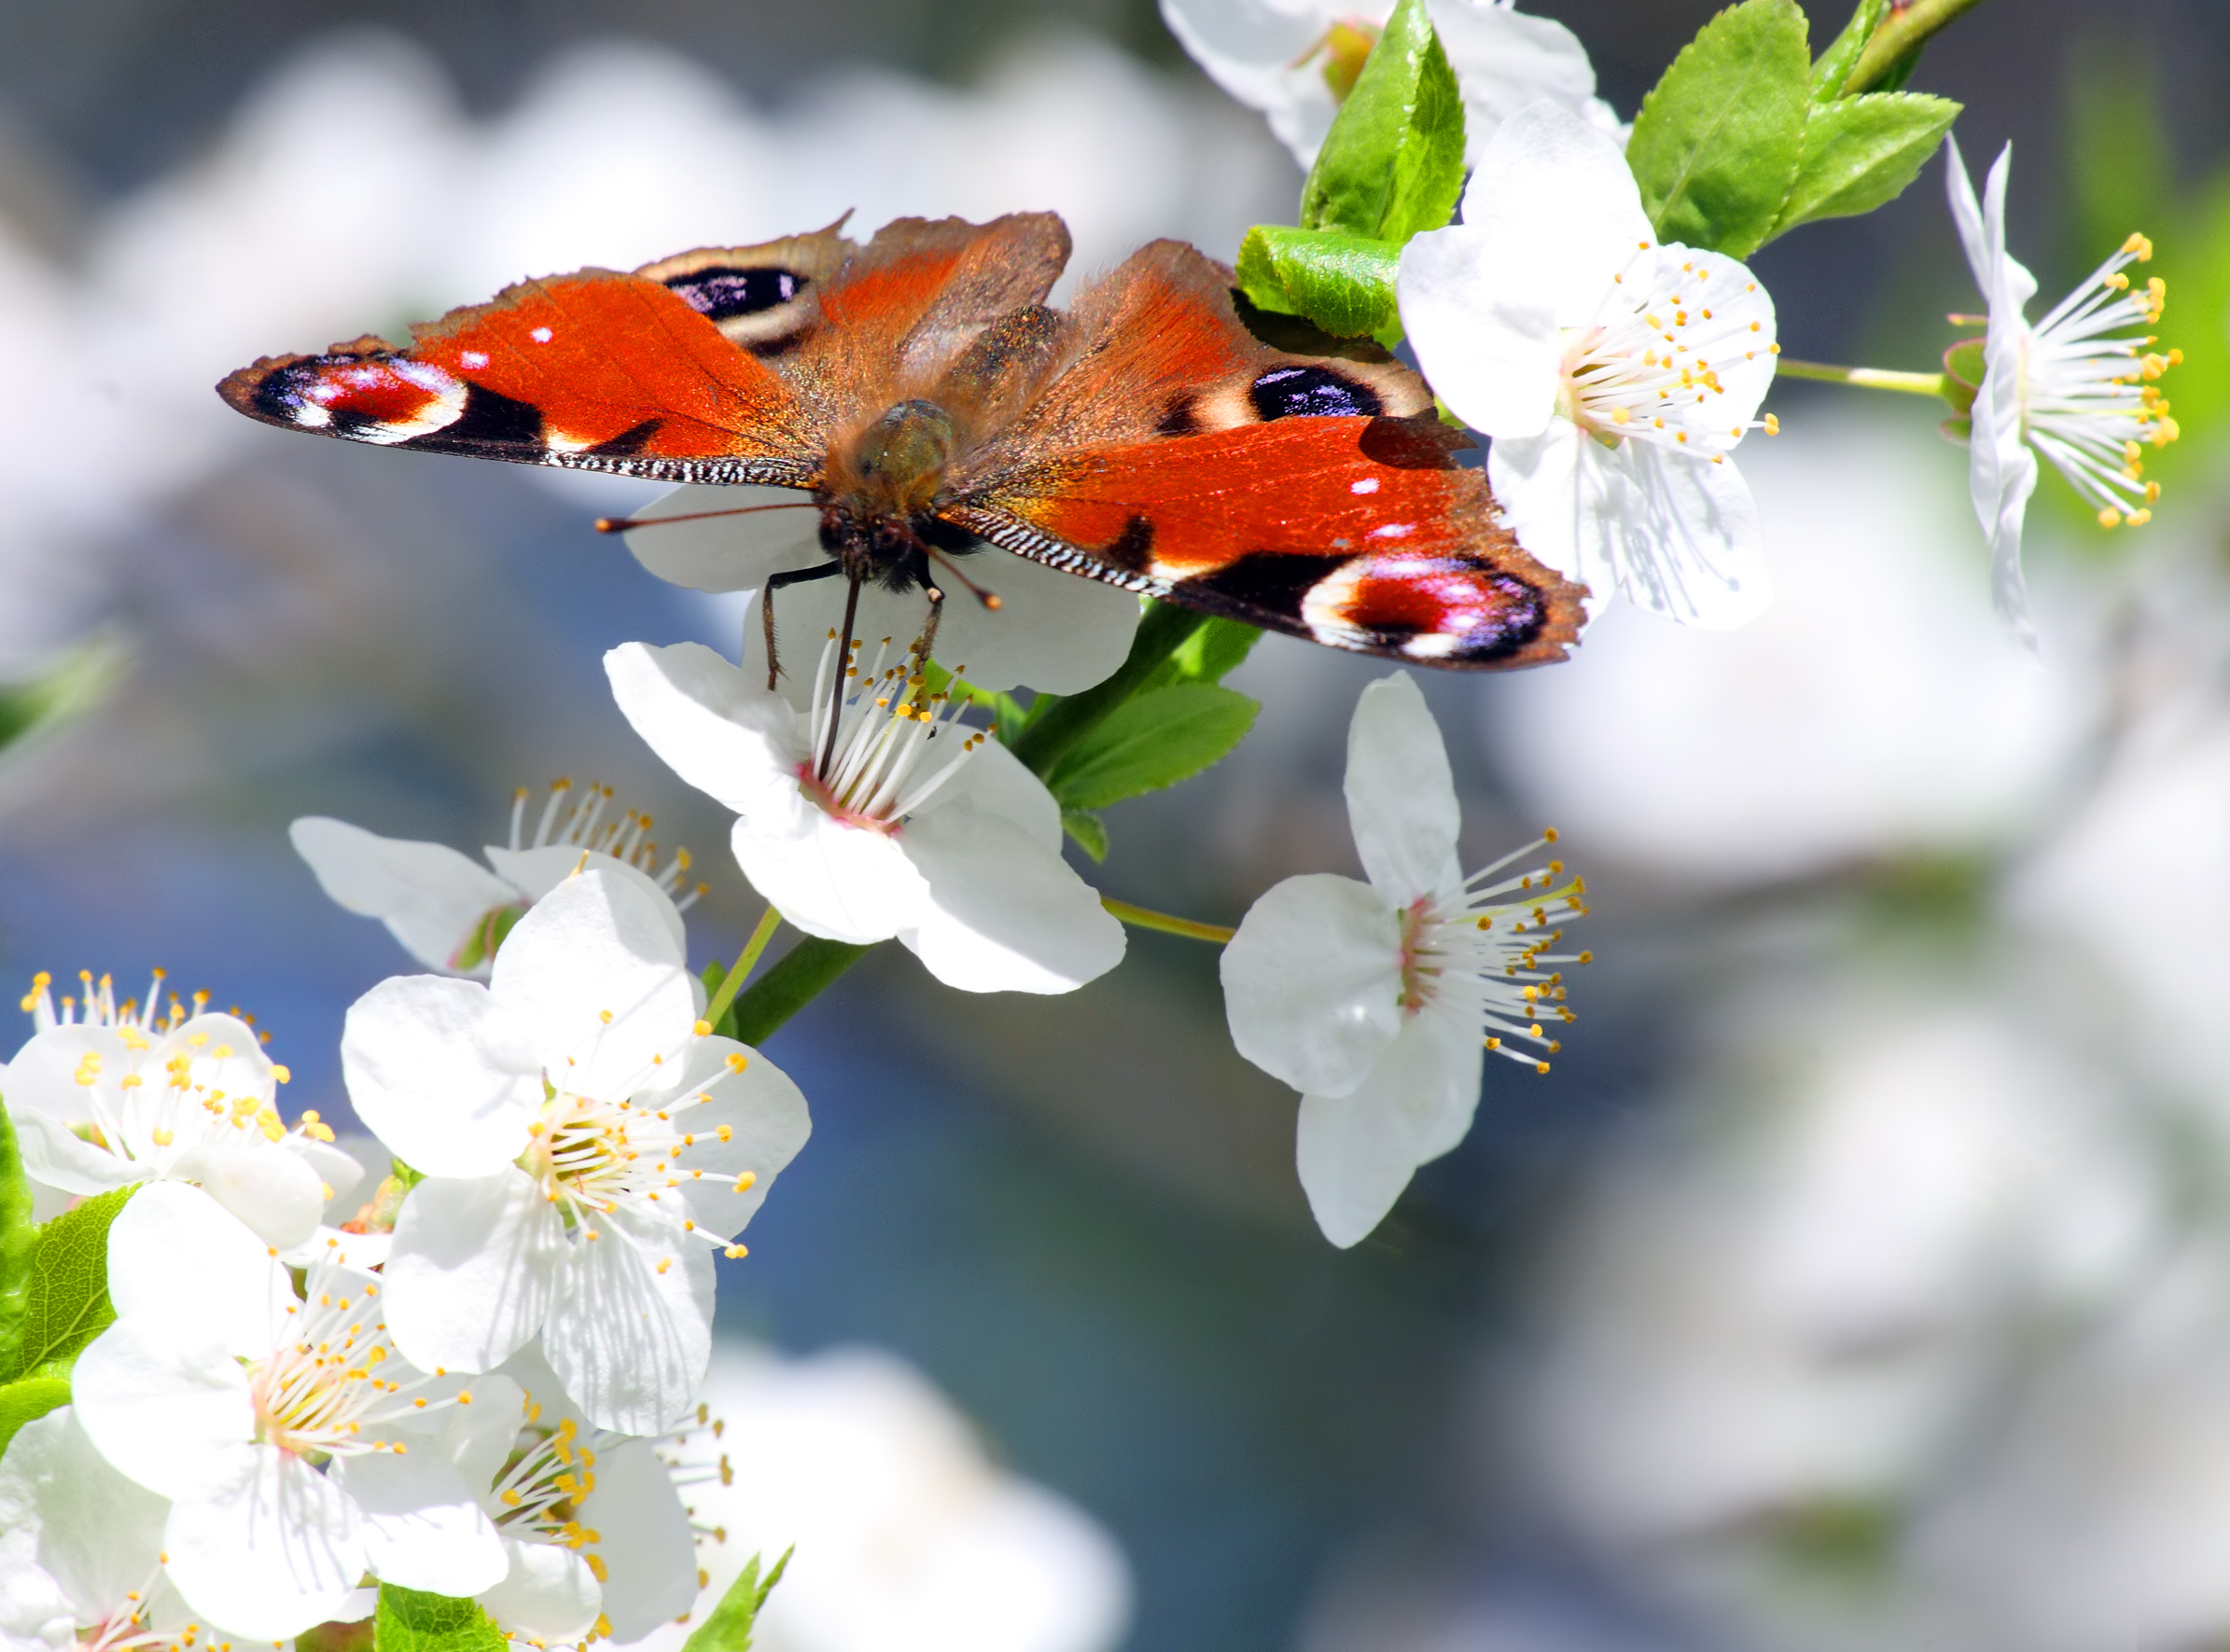 Peacock Butterfly on White Cherry